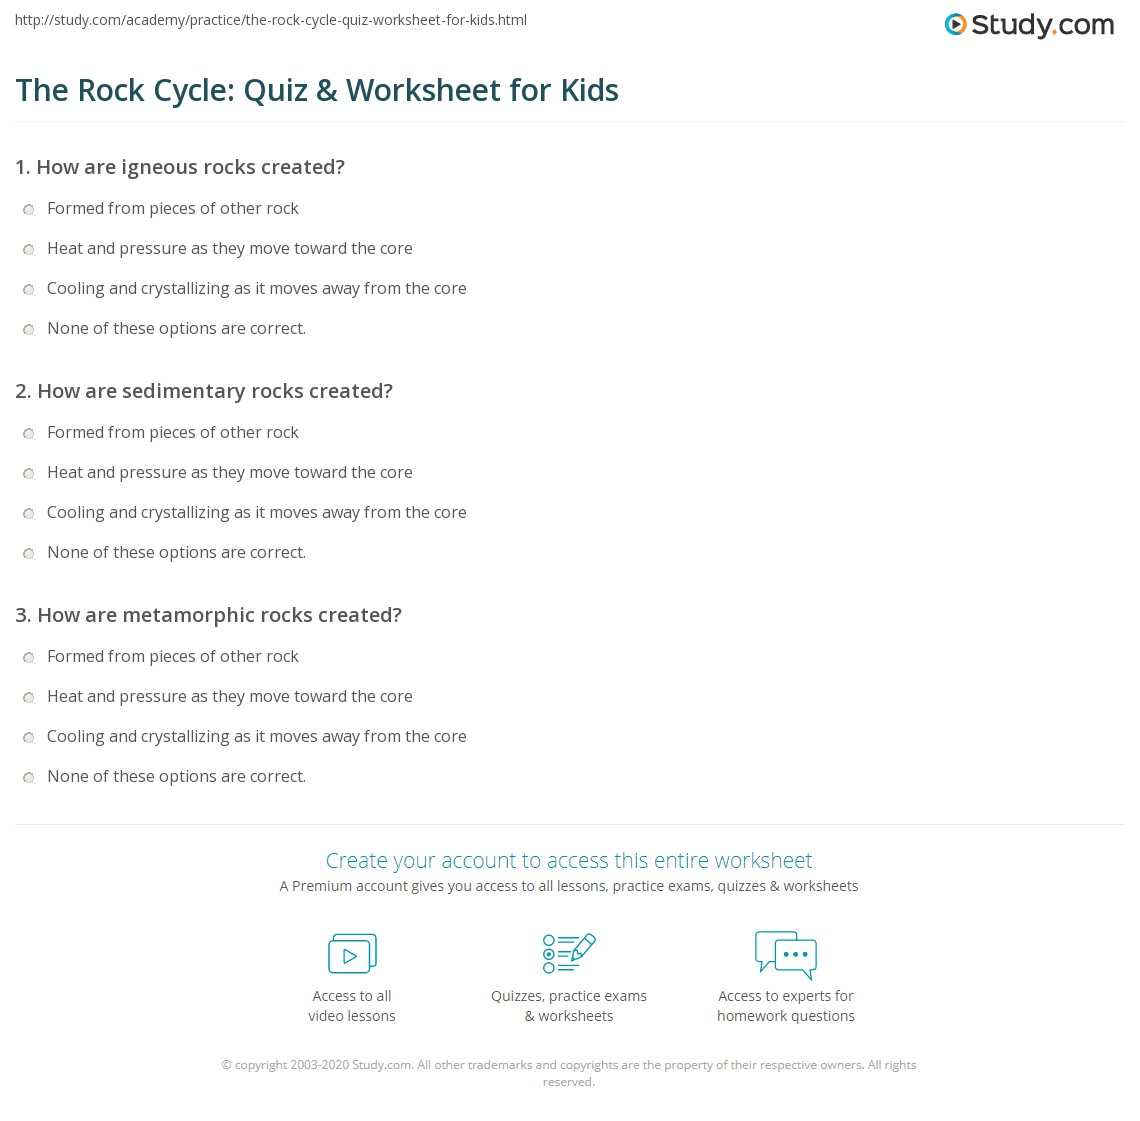 The Rock Cycle: Quiz & Worksheet for Kids | Study.com